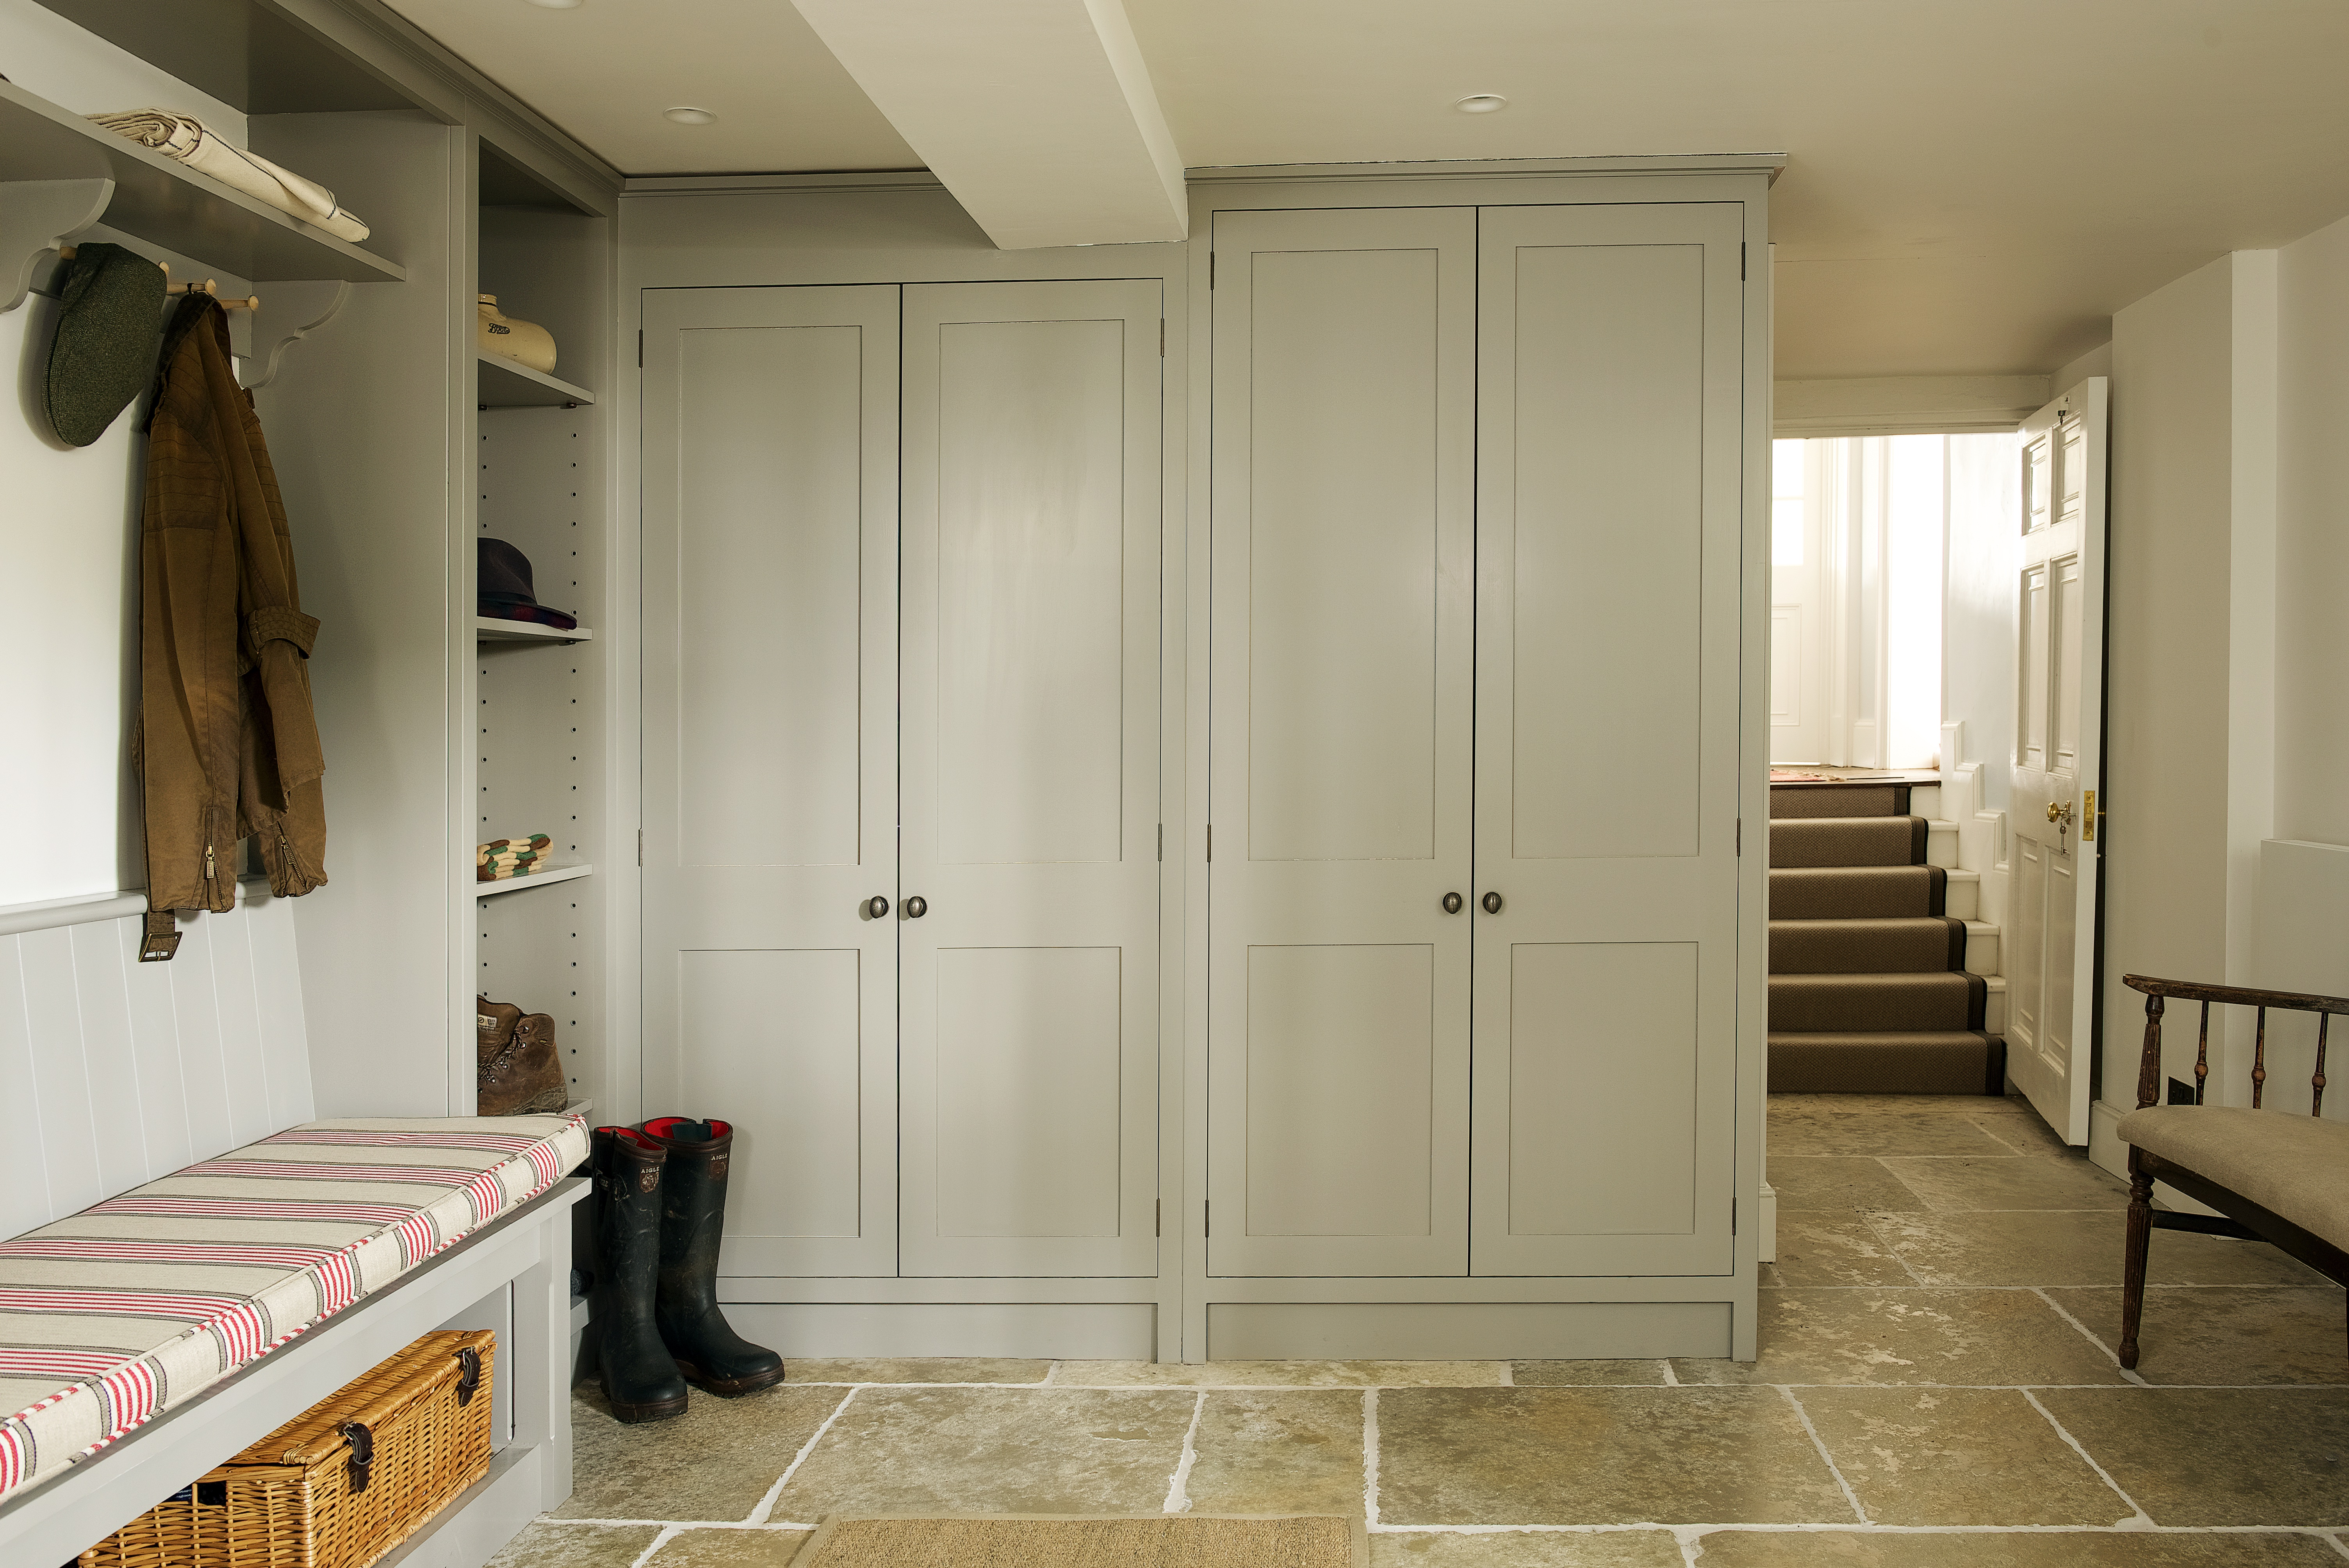 Bespoke handmade boot room with open shelves and shaker pegs on a bracketed shelf and a bench all hand painted in grey.